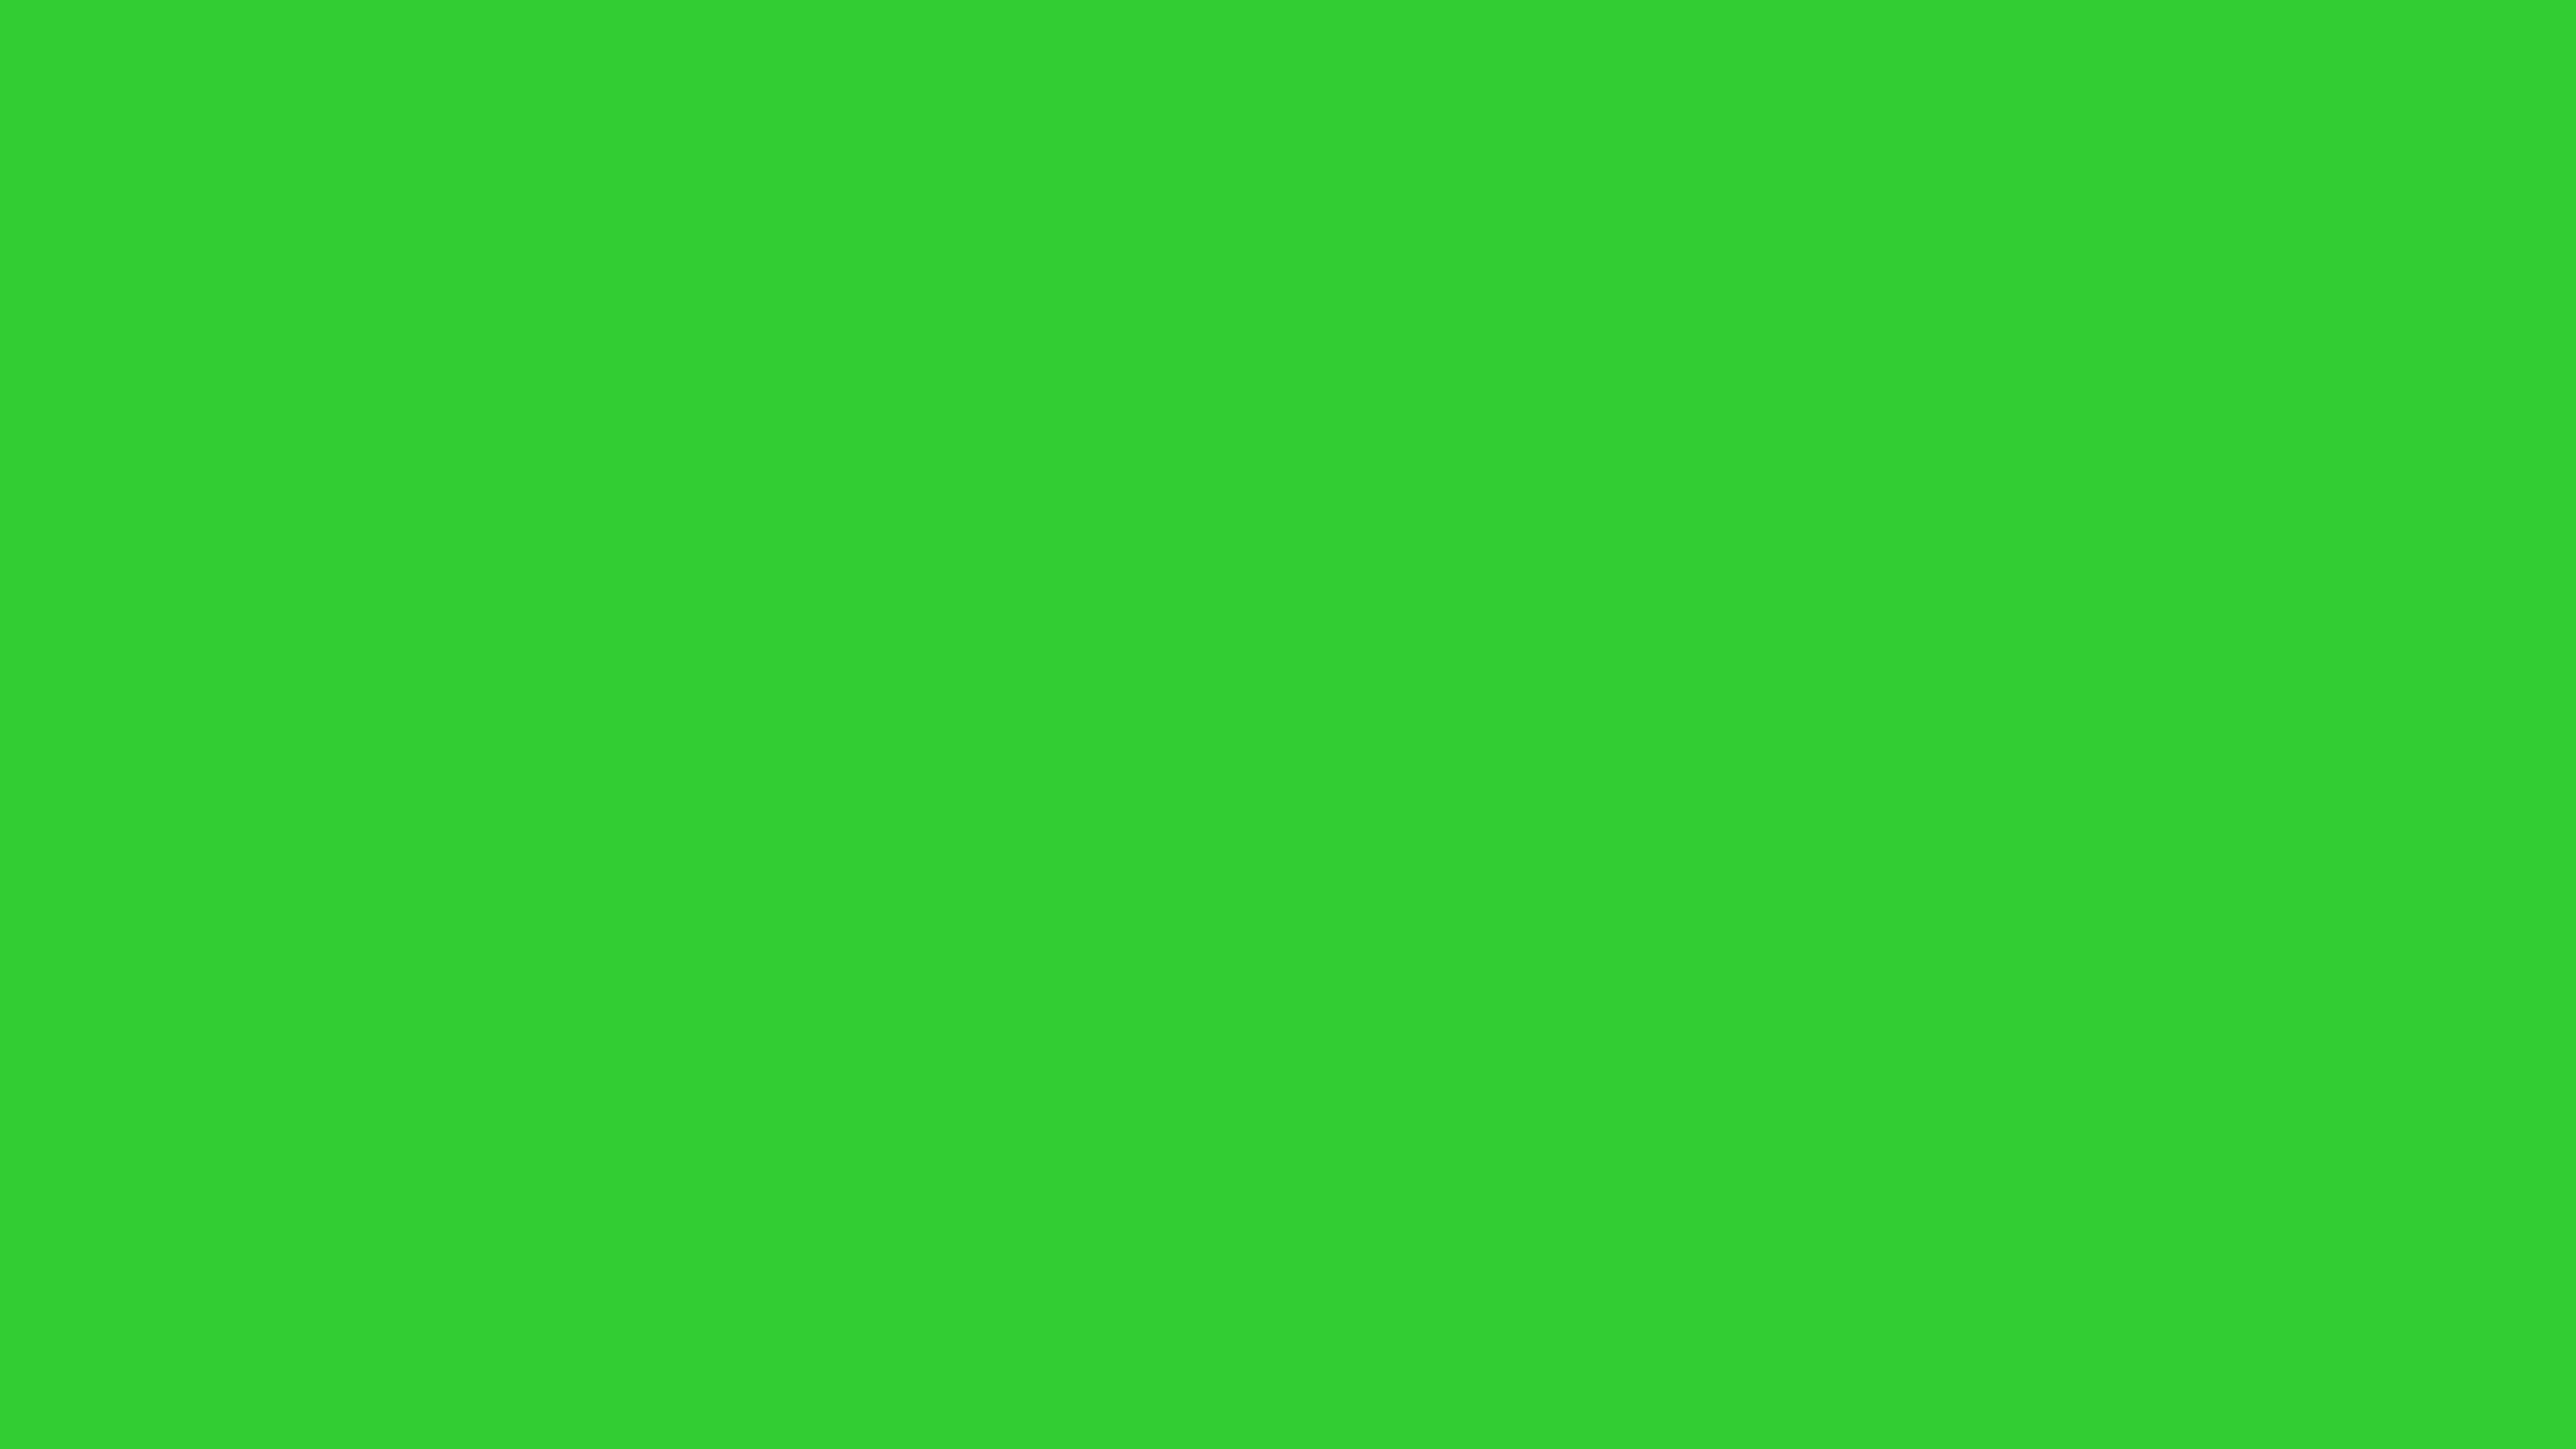 4096x2304 Lime Green Solid Color Background